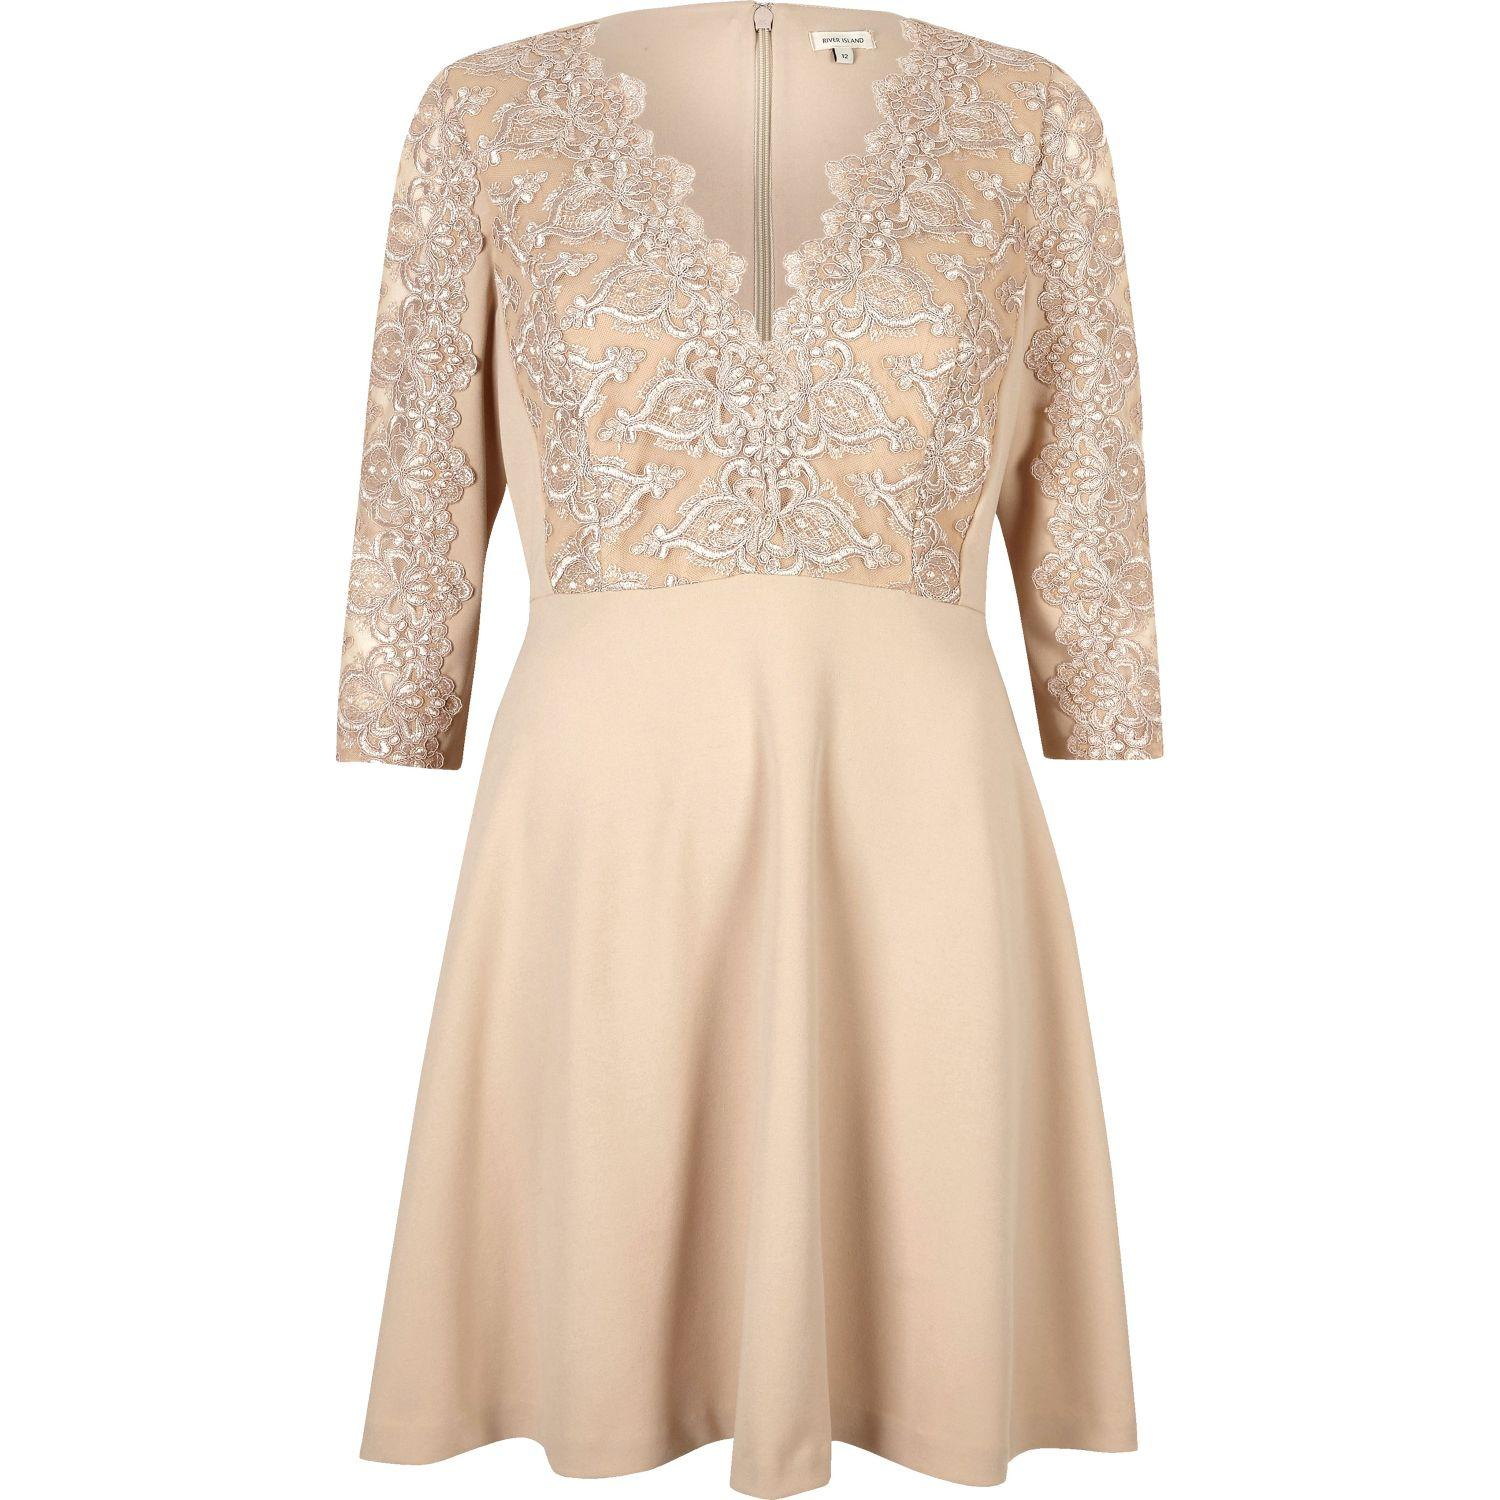 Dresses For Wedding Guest River Island : River island nude plunge lace skater dress in blue lyst